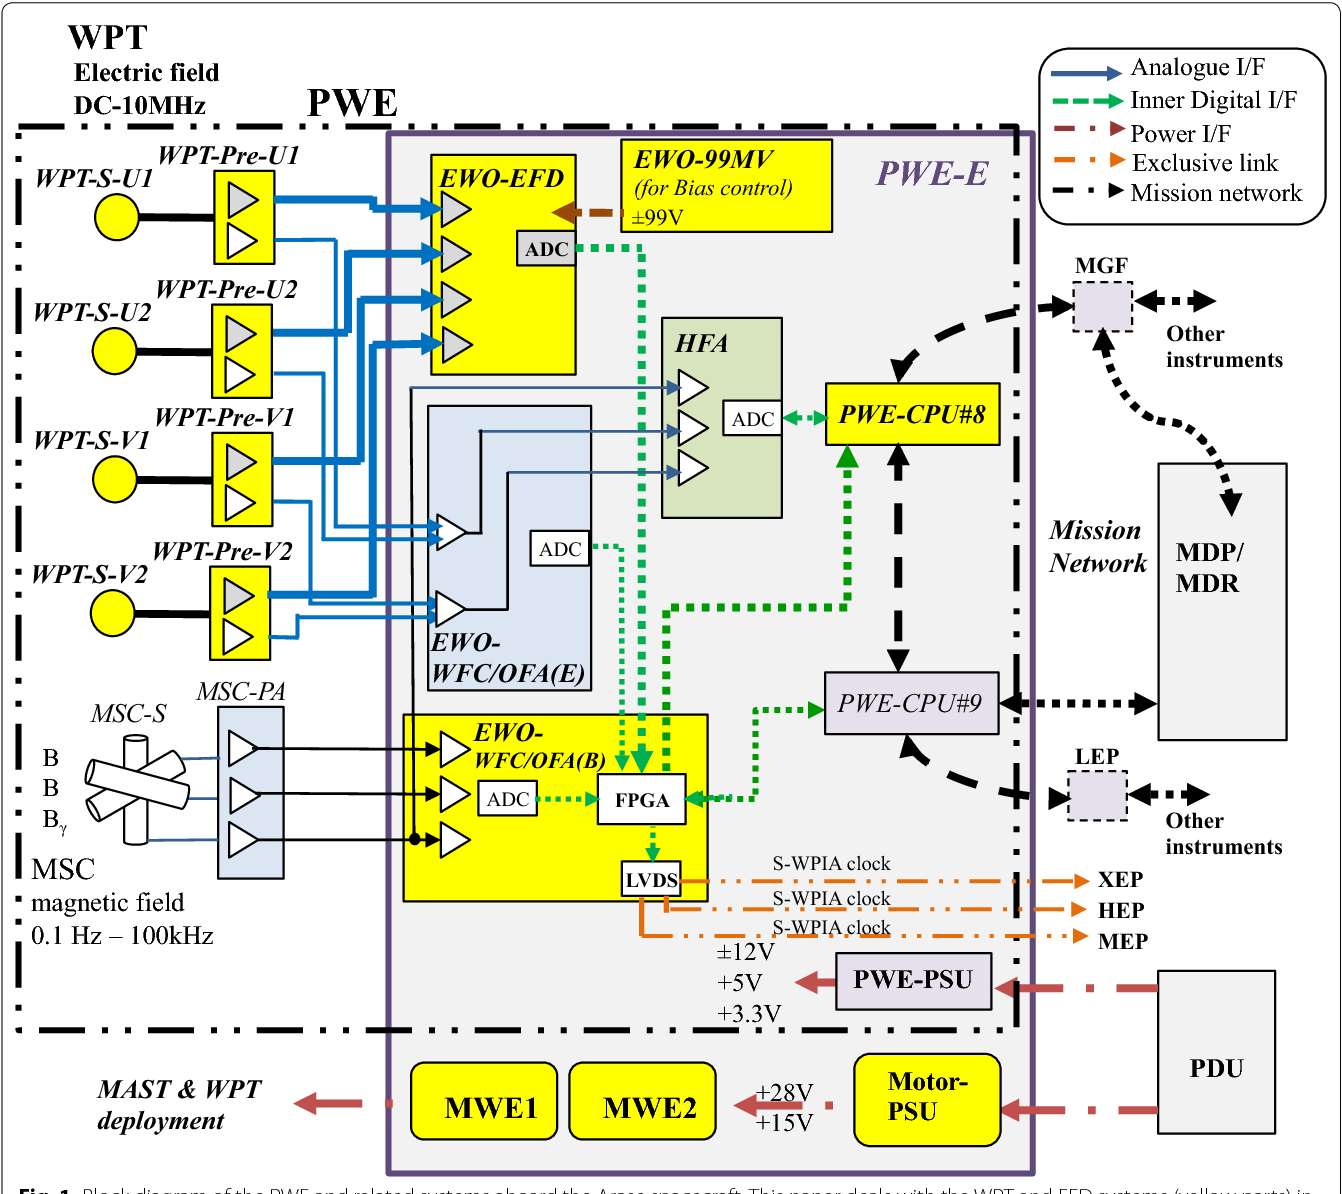 1 block diagram of the pwe and related systems aboard the arase spacecraft